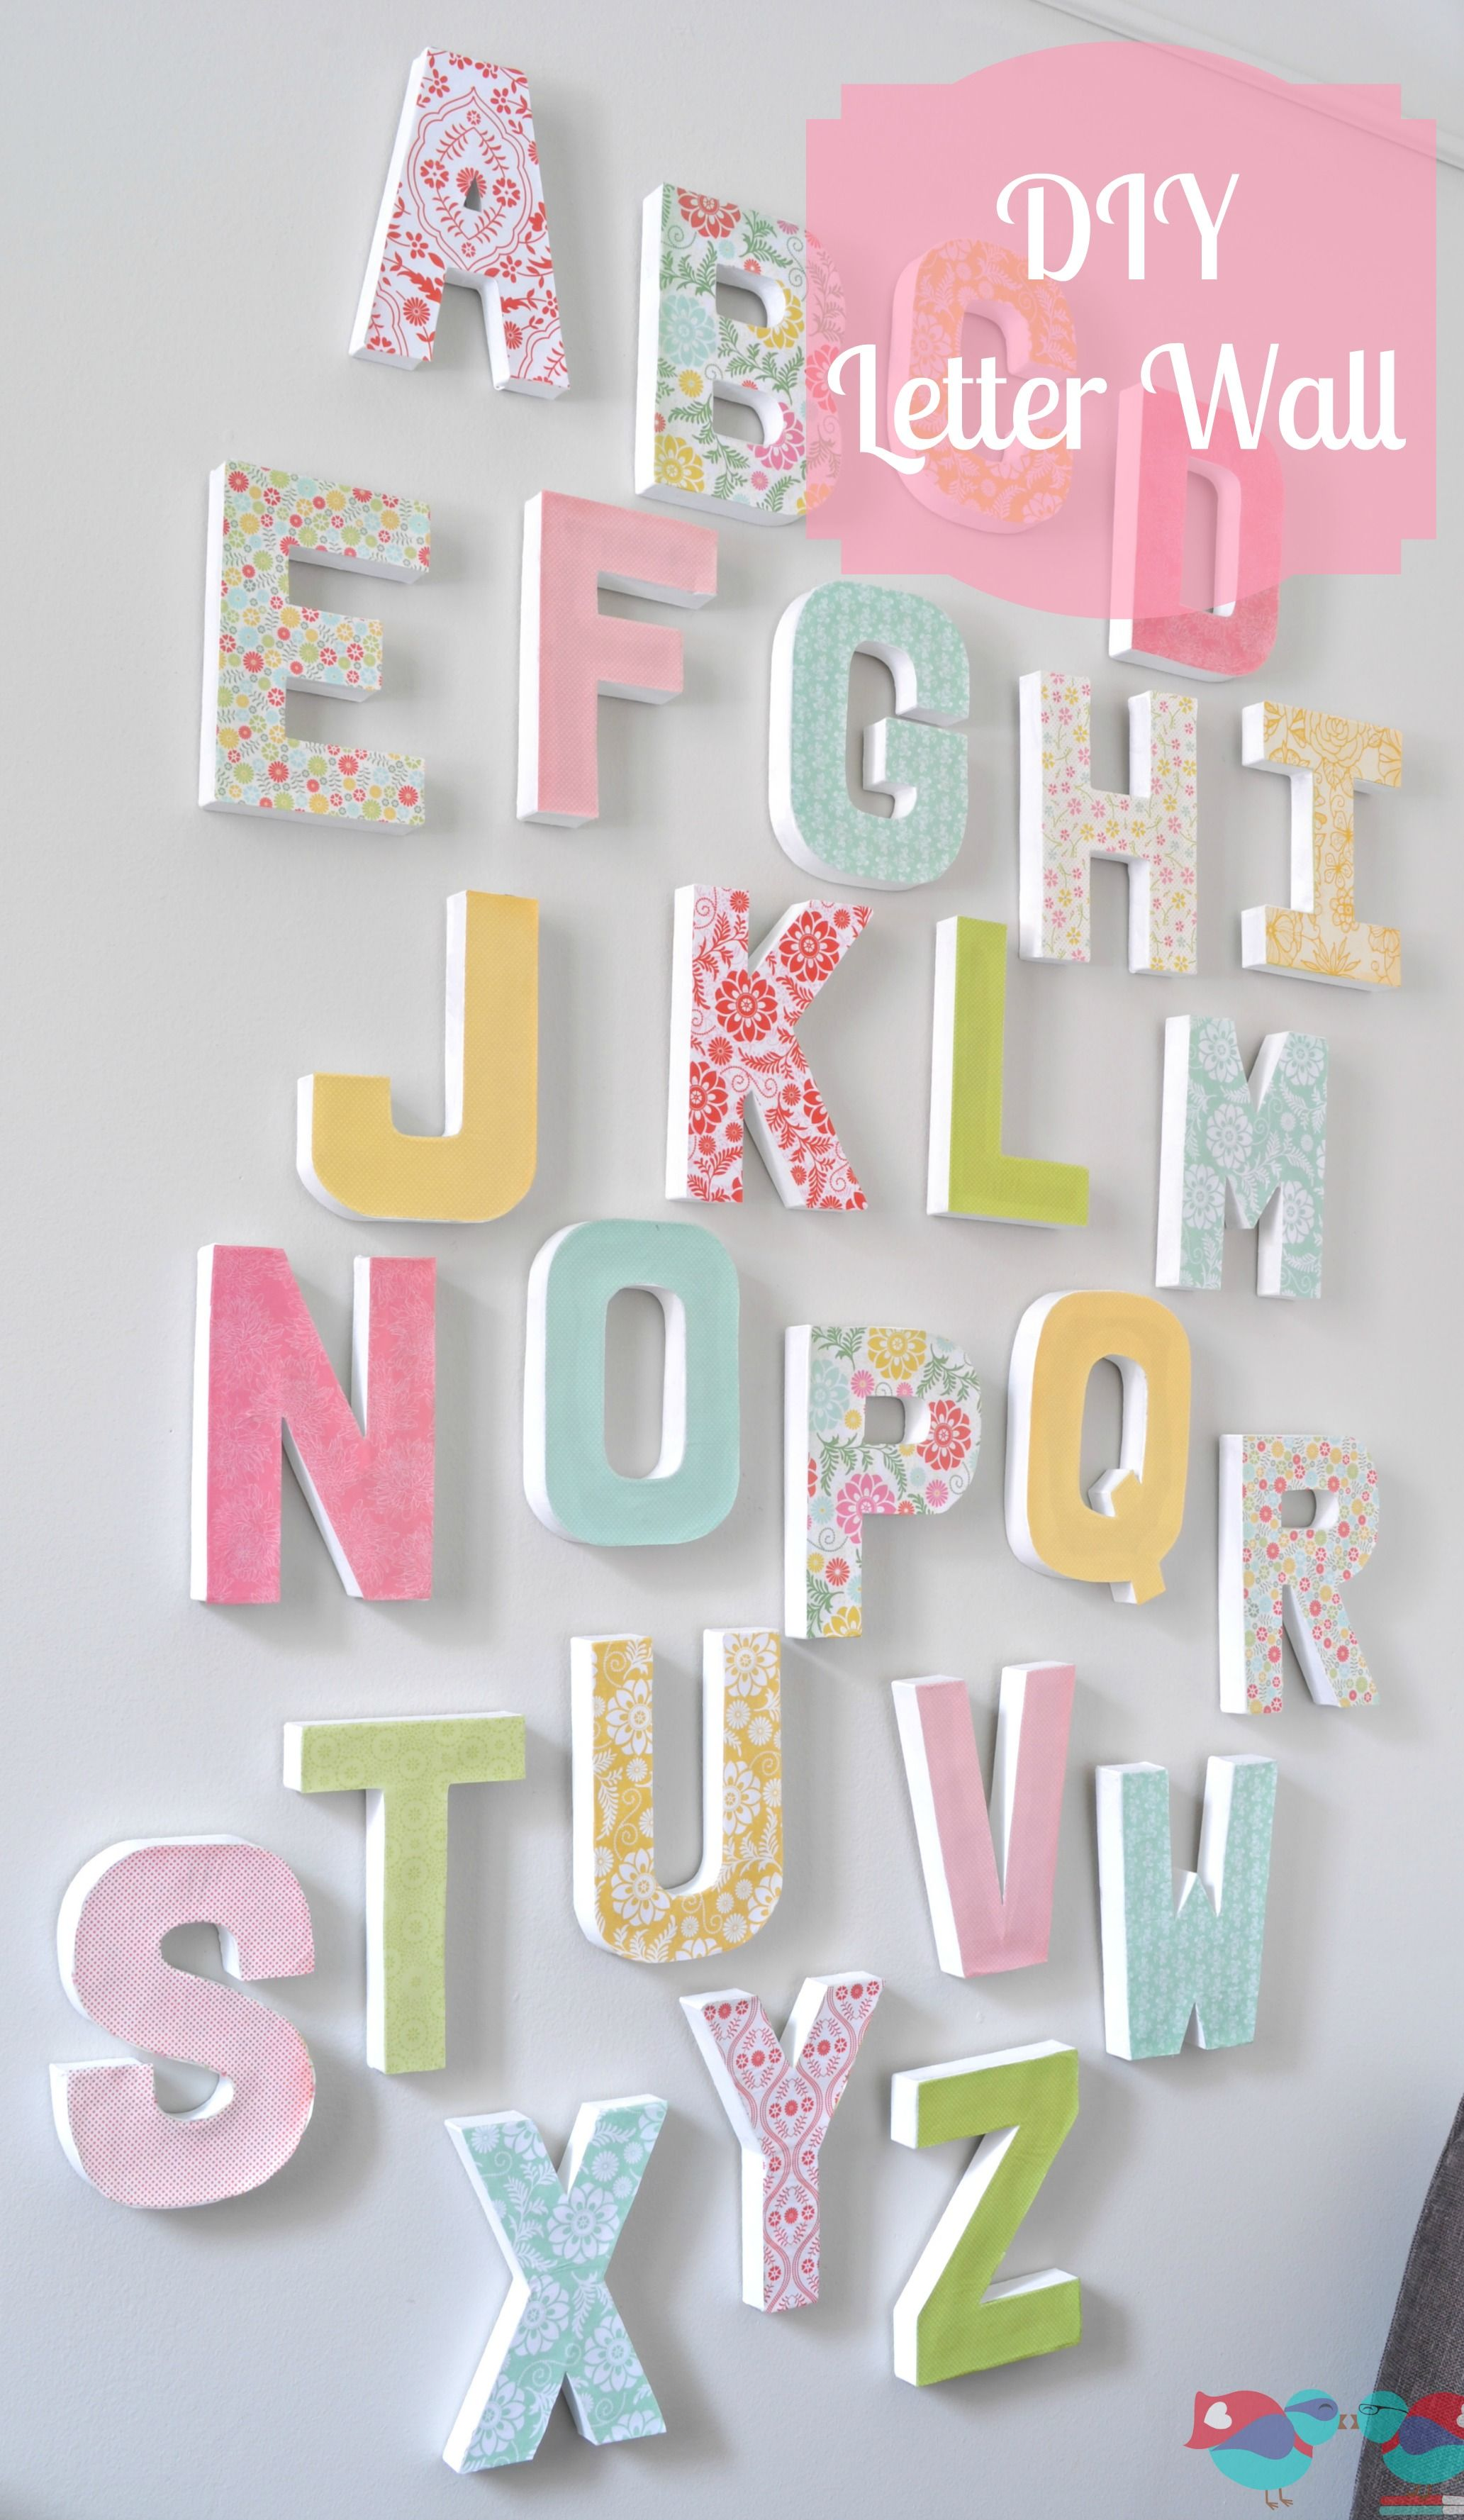 diy letter decor diy letter wall decor craft with joann letter wall 21385 | c140c064ac42397388d1d362a37a0cb5